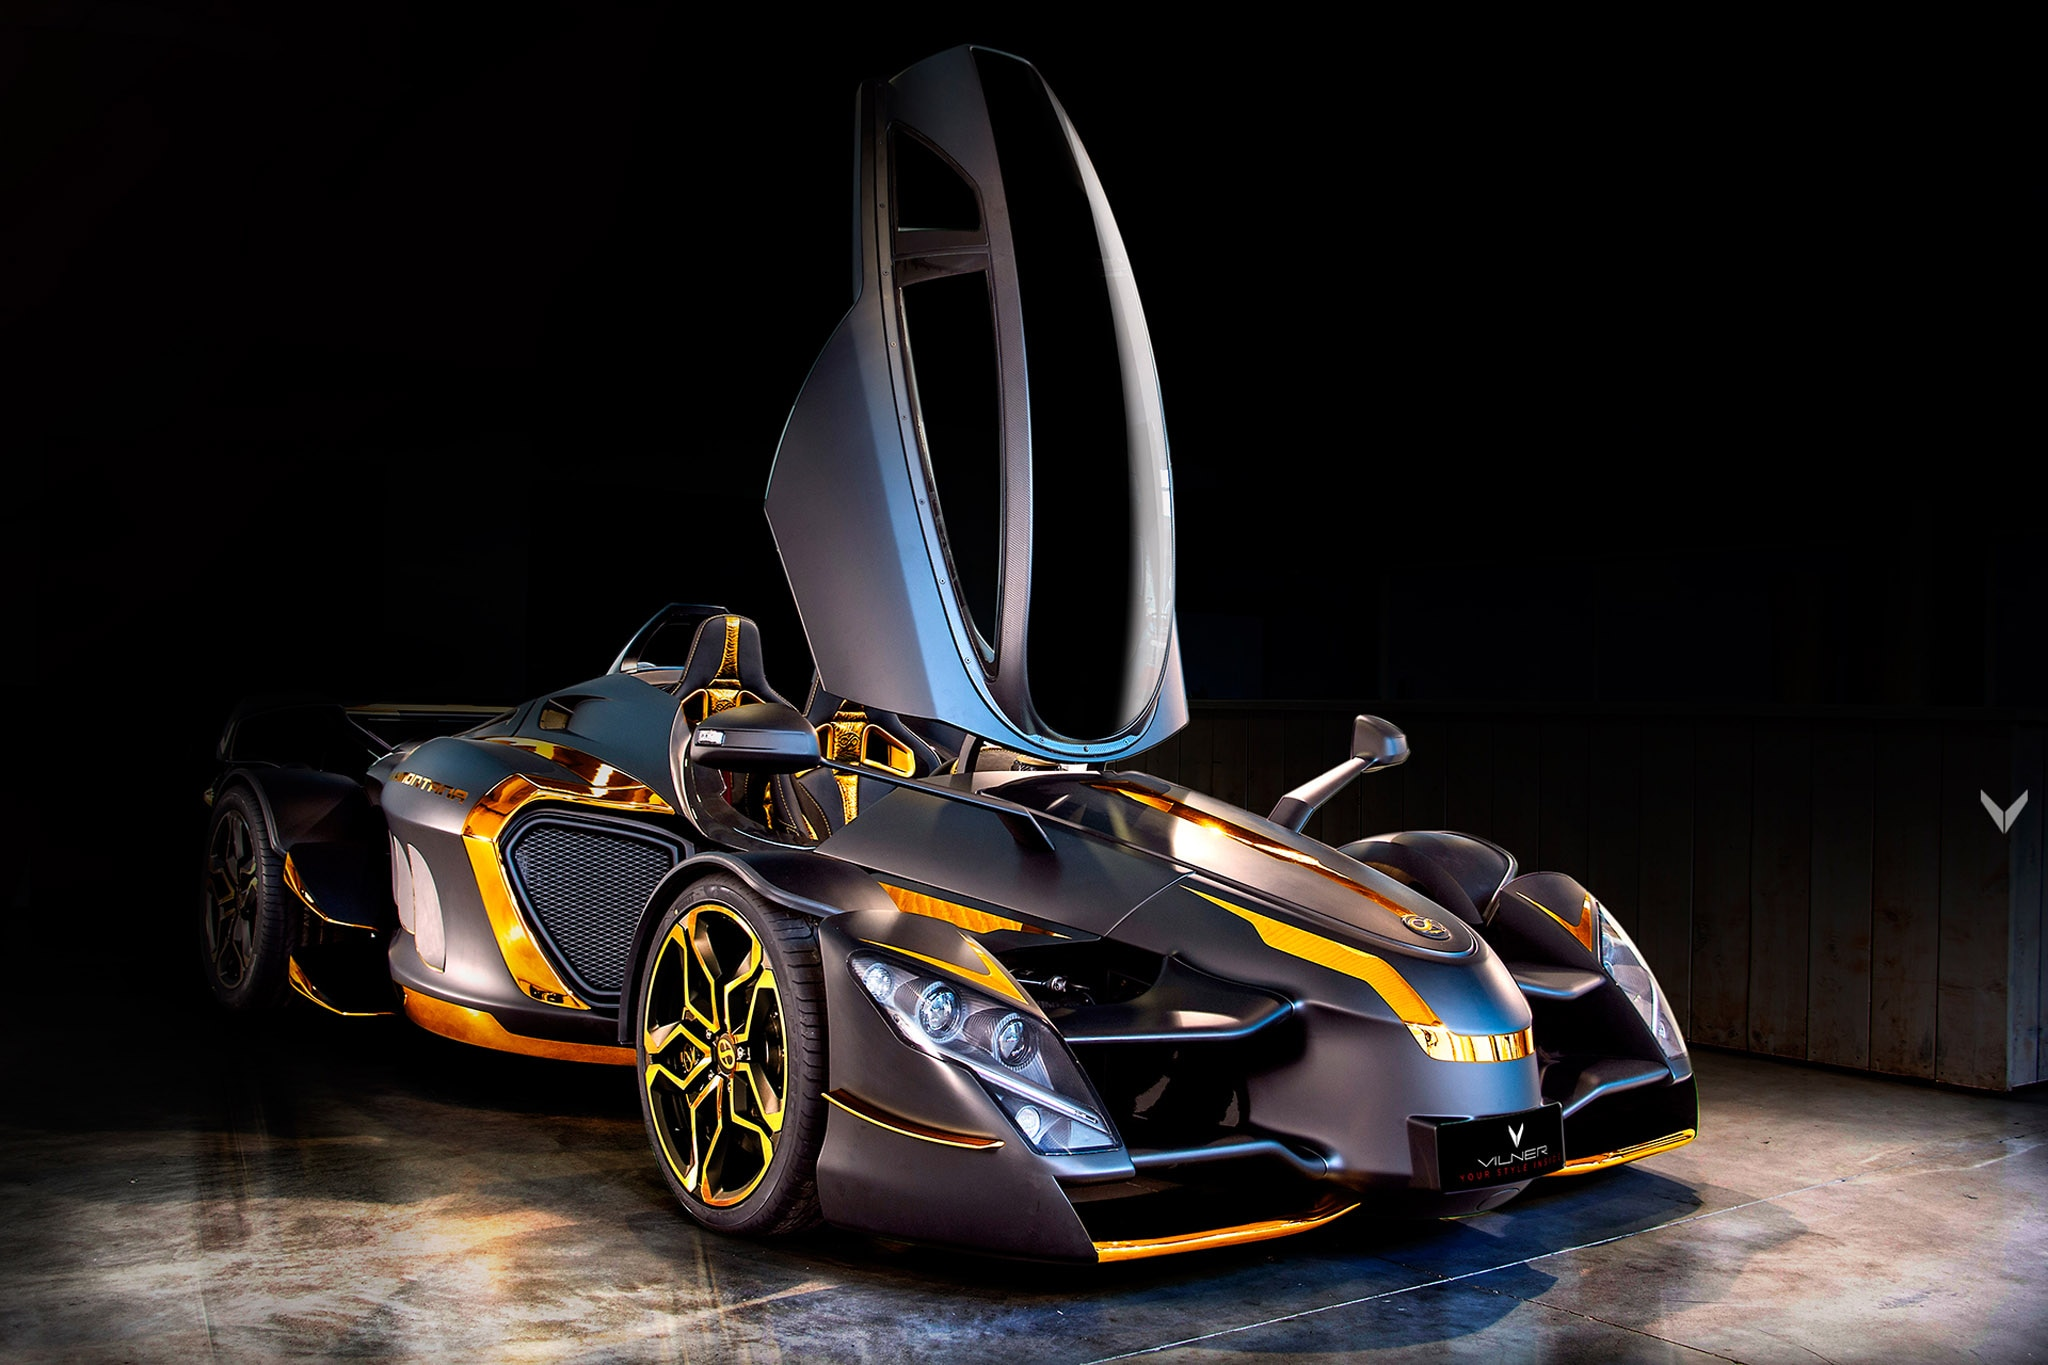 2017 Ad Tramontana Receives Vilner S Golden Touch